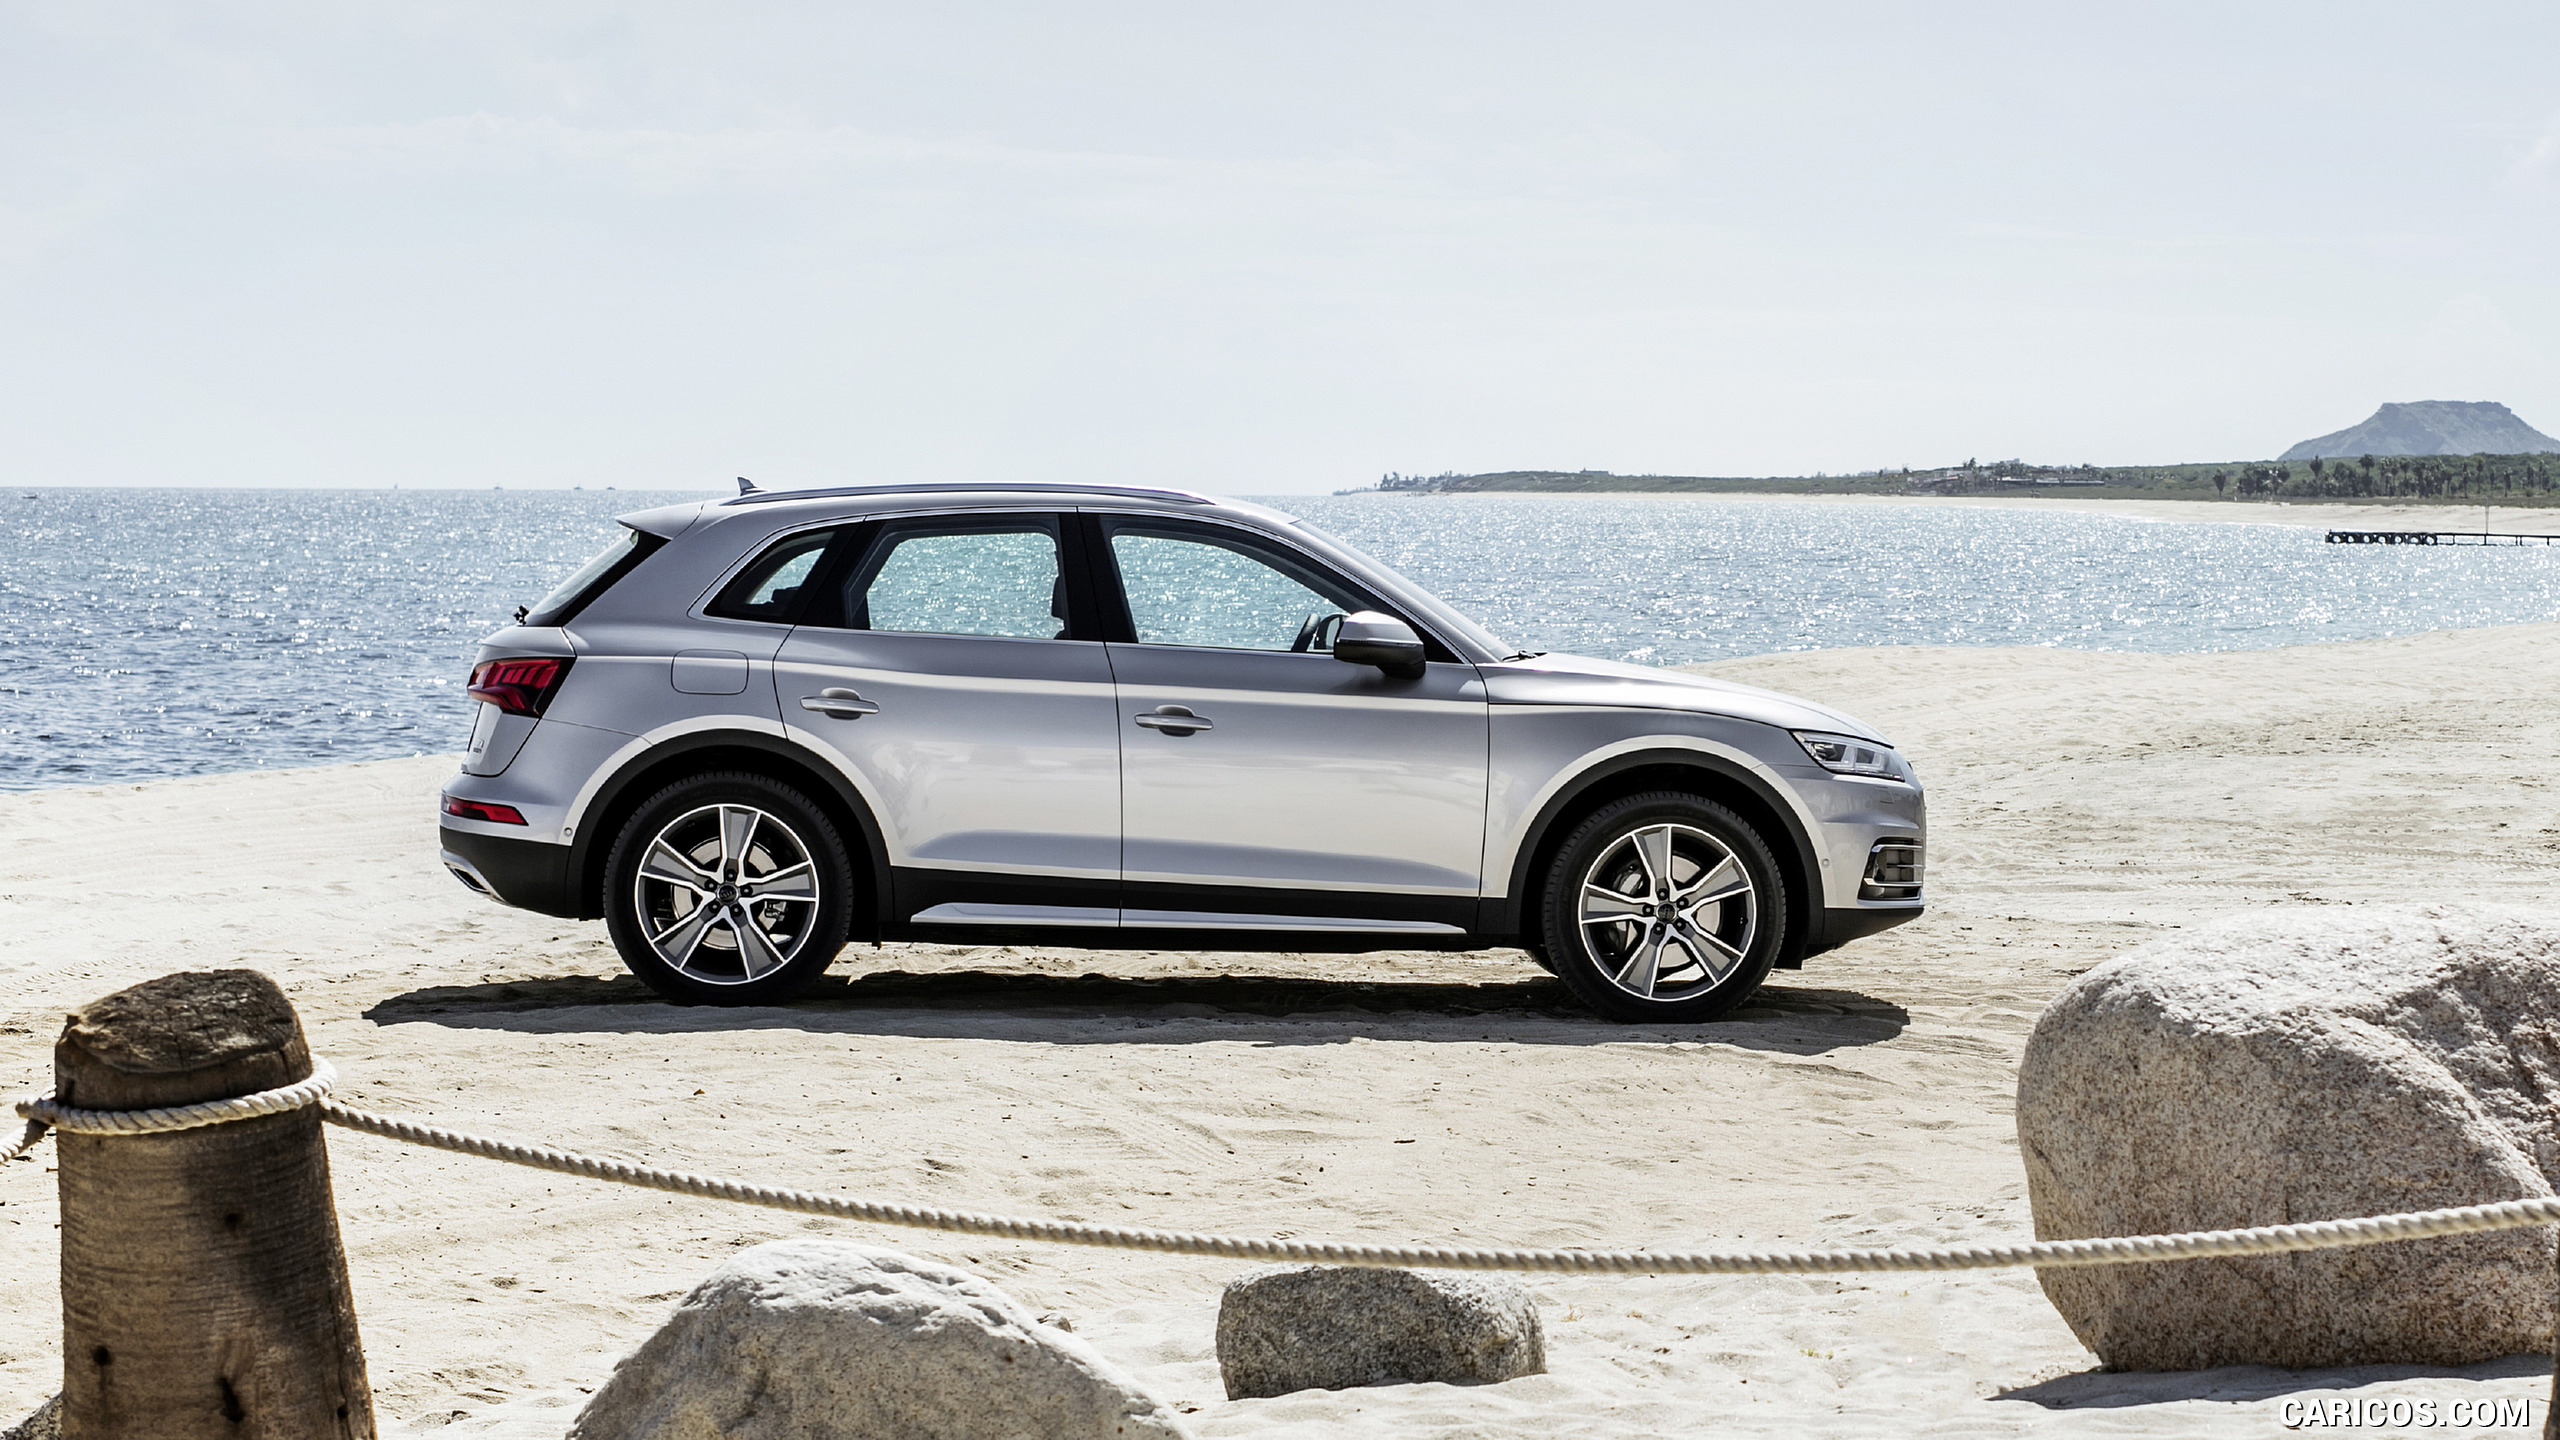 2560x1440 - Audi Q5 Wallpapers 24